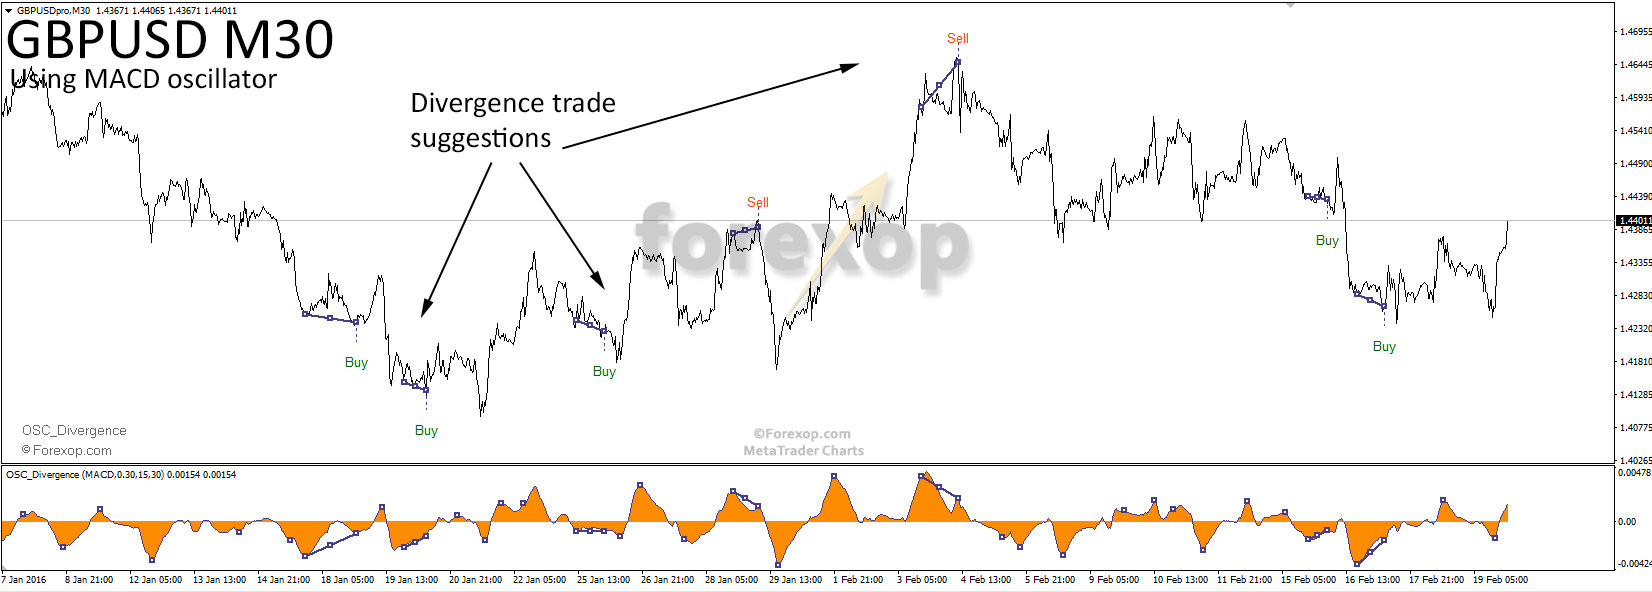 Figure 2: M30 divergences trade suggestions using MACD